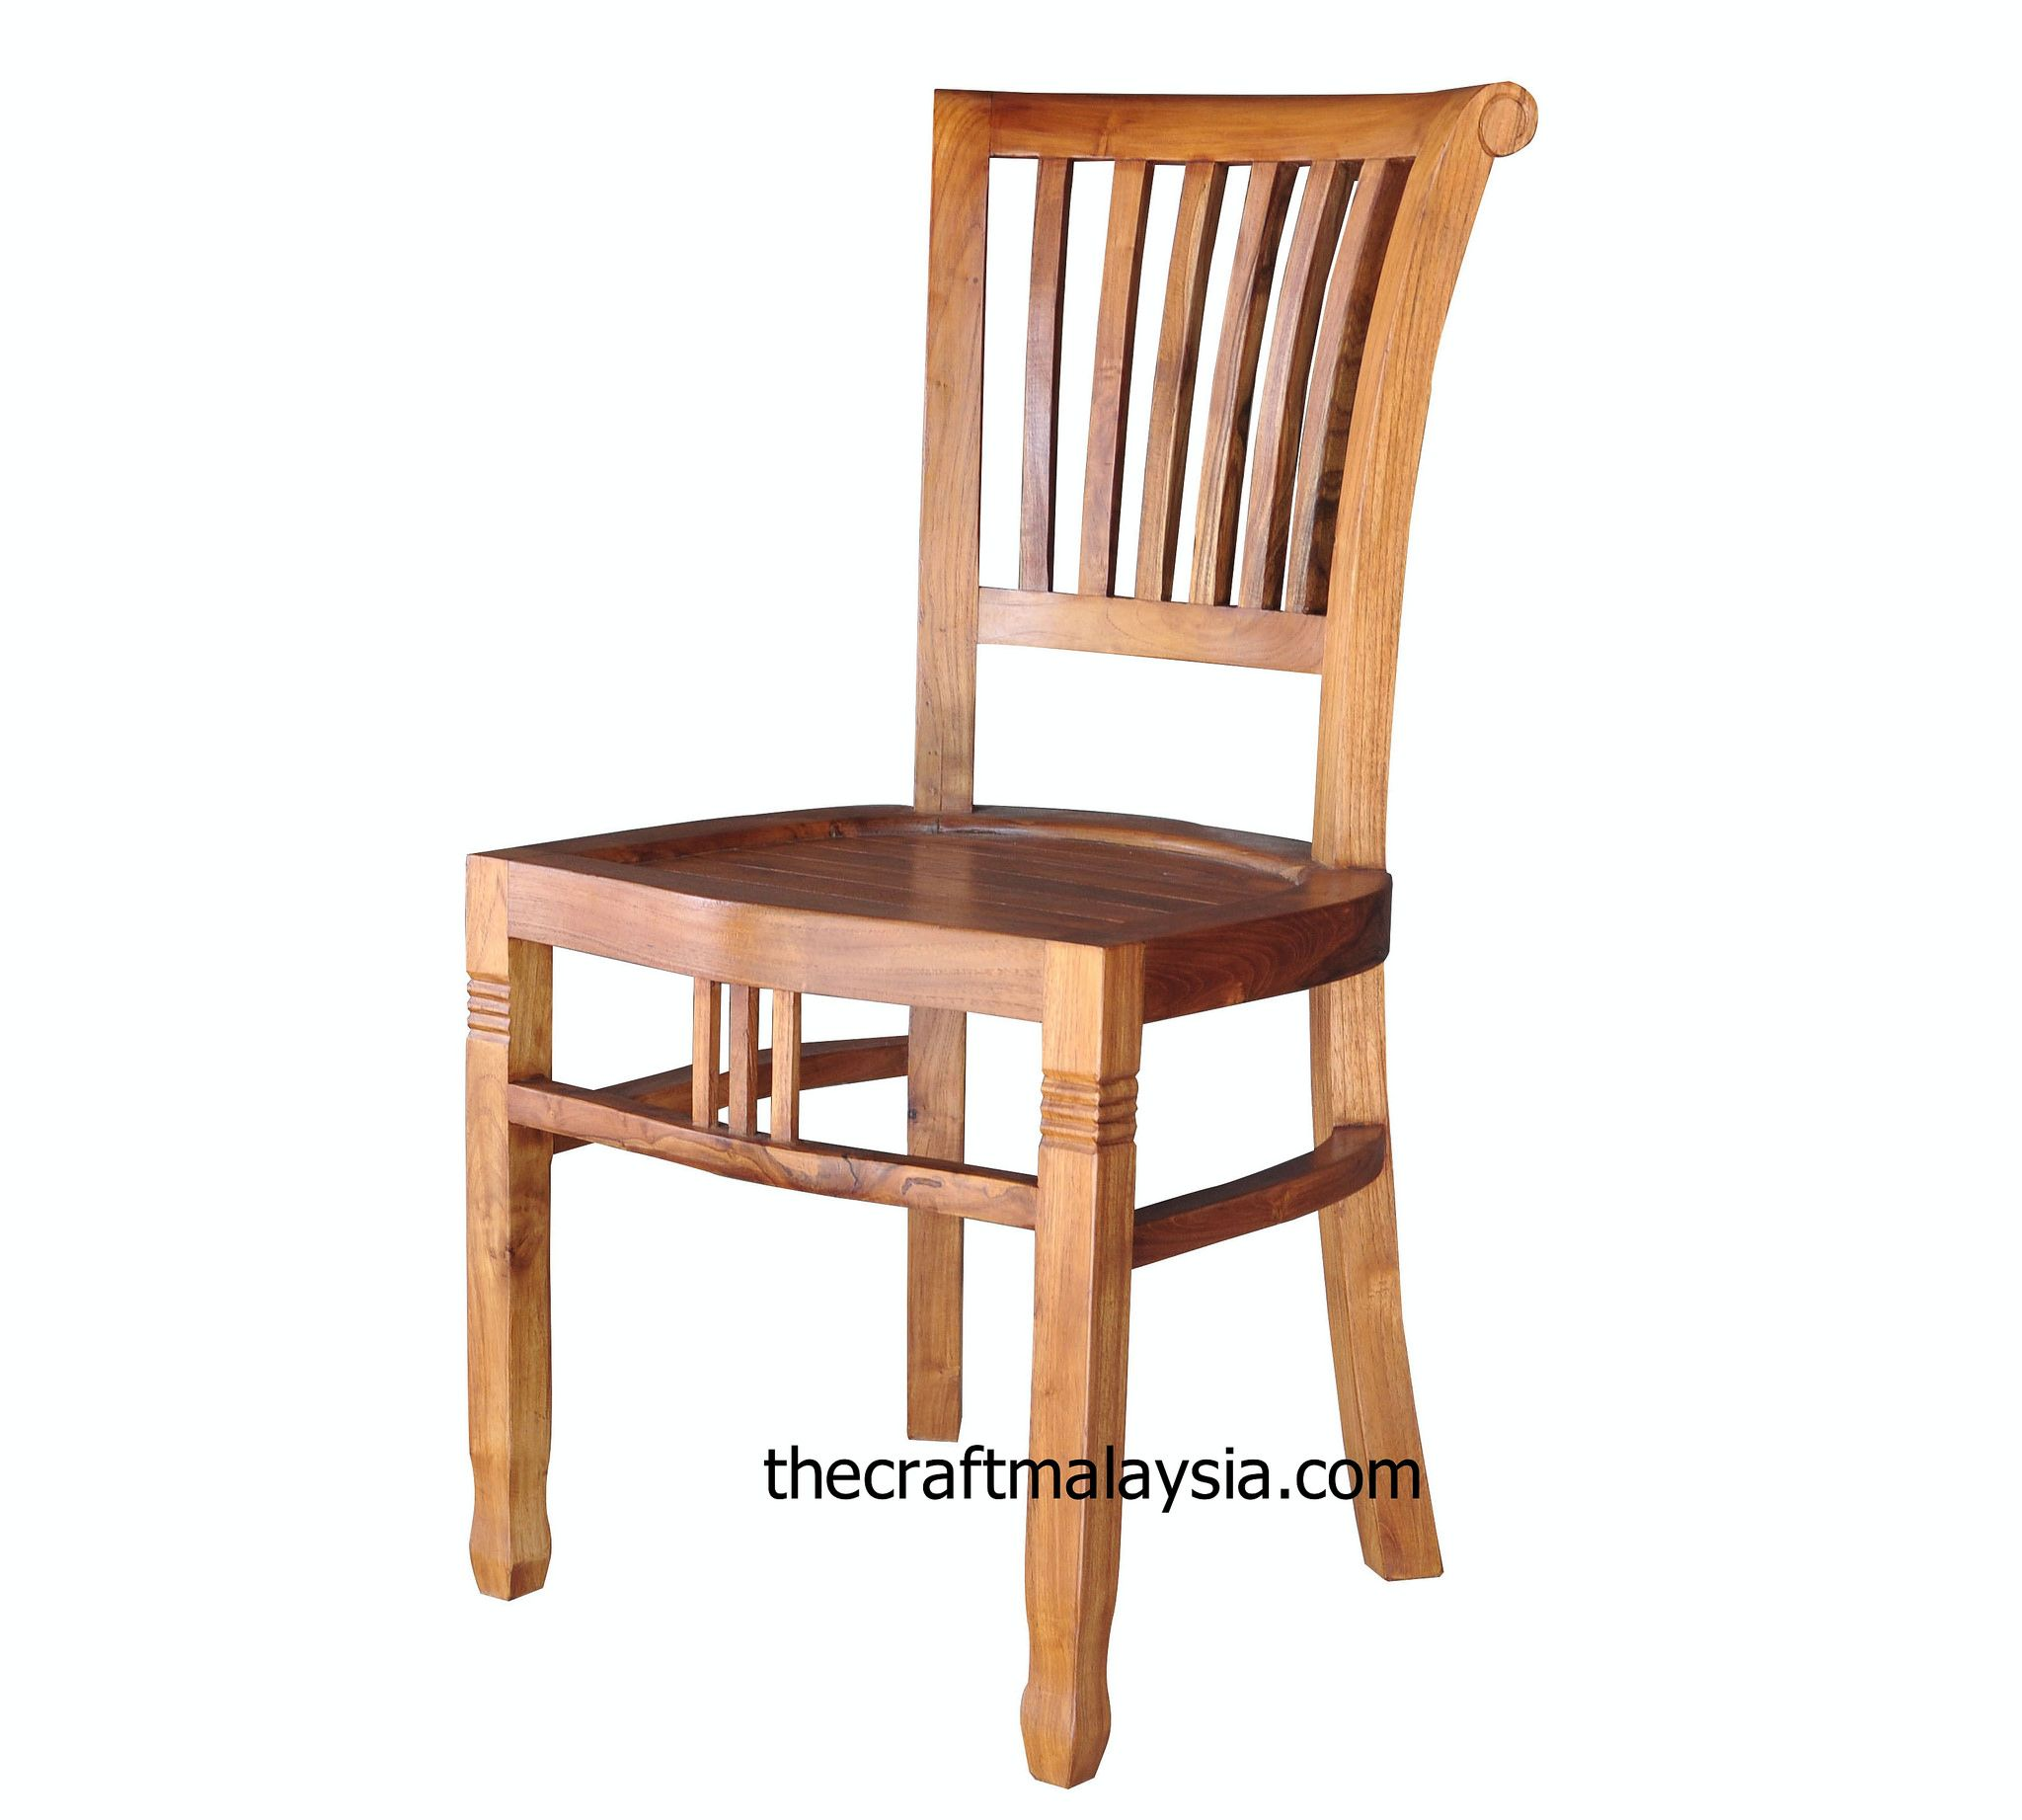 Cario teak wood dining chair made of premium teak It is solid and strong  its design mak. cario dining chair restaurent furniture dining sets dinning